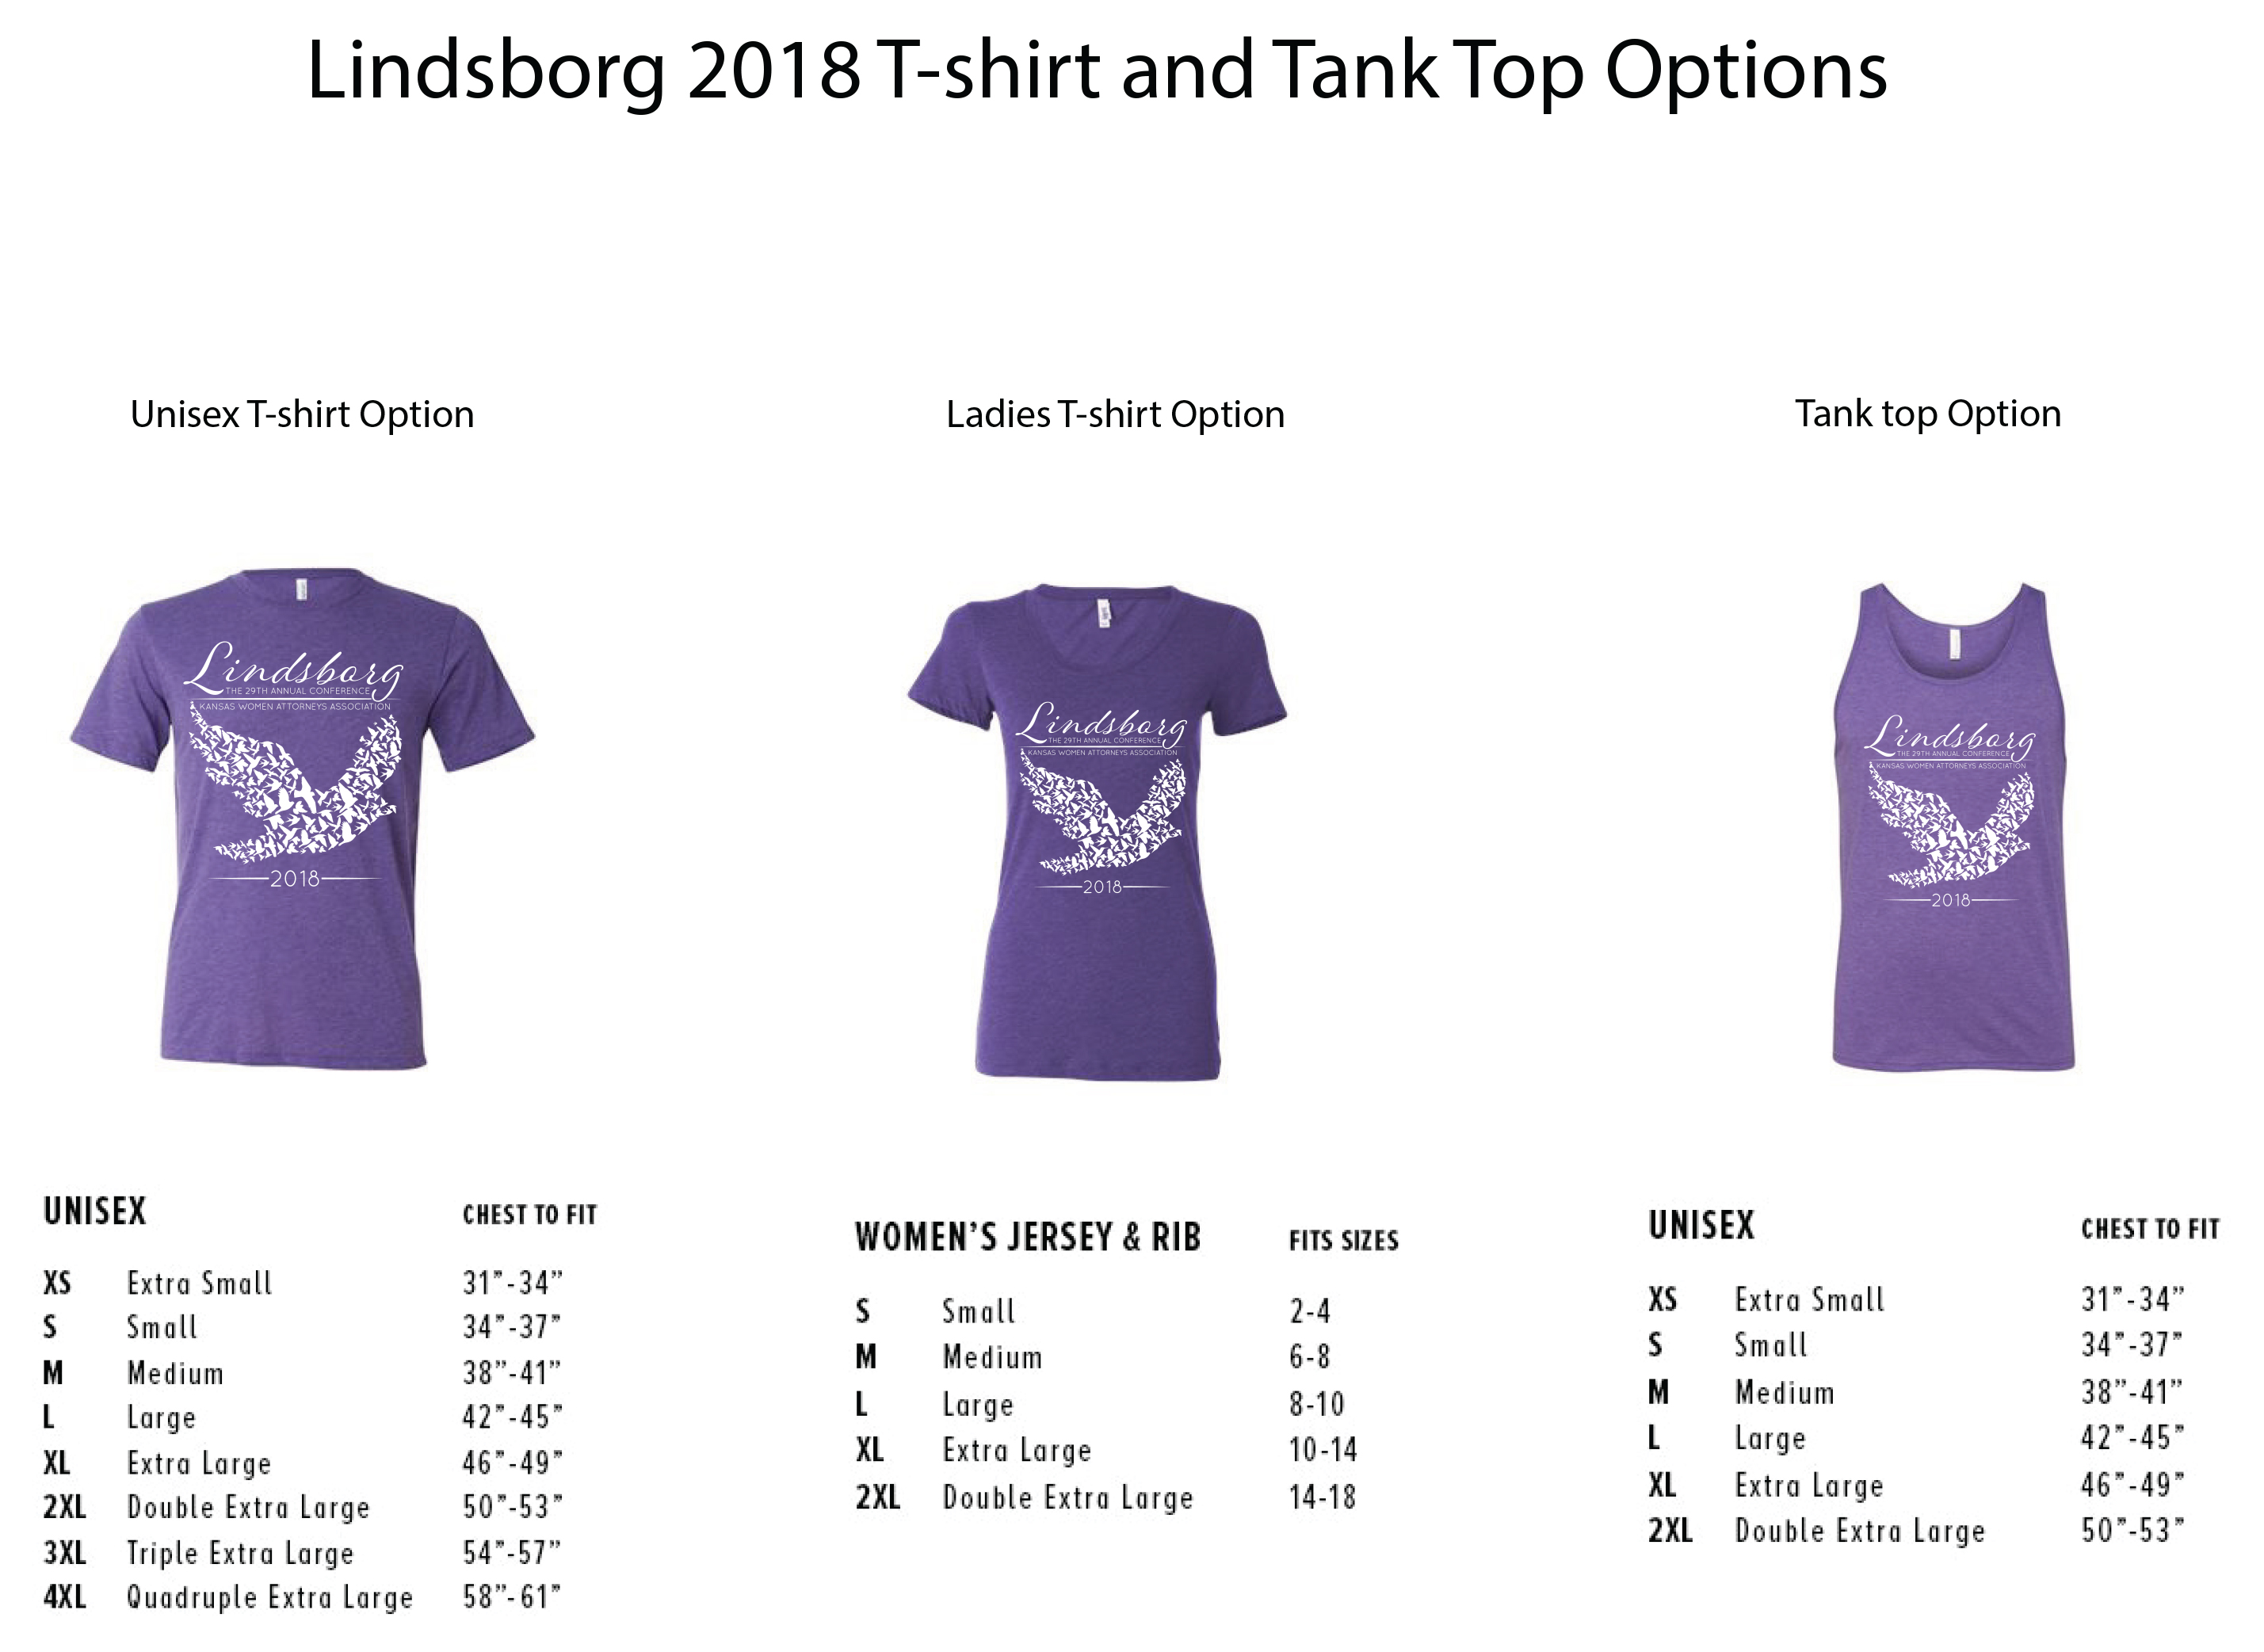 2018 Lindsborg T-shirt options